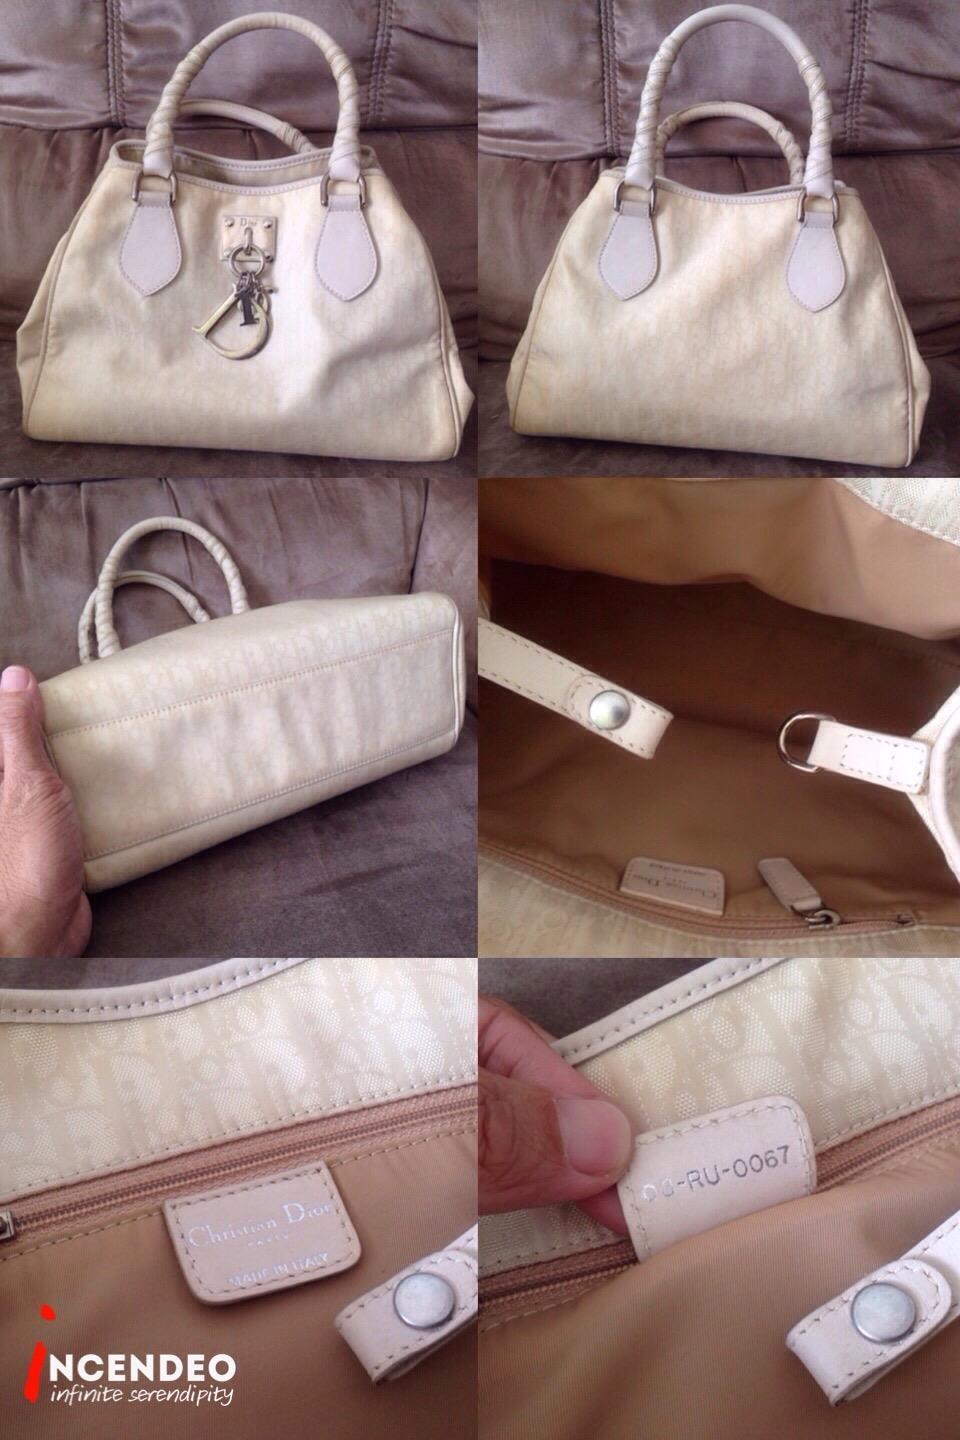 **incendeo** - Authentic CHR1ST1AN D1OR Paris Handbag for Ladies